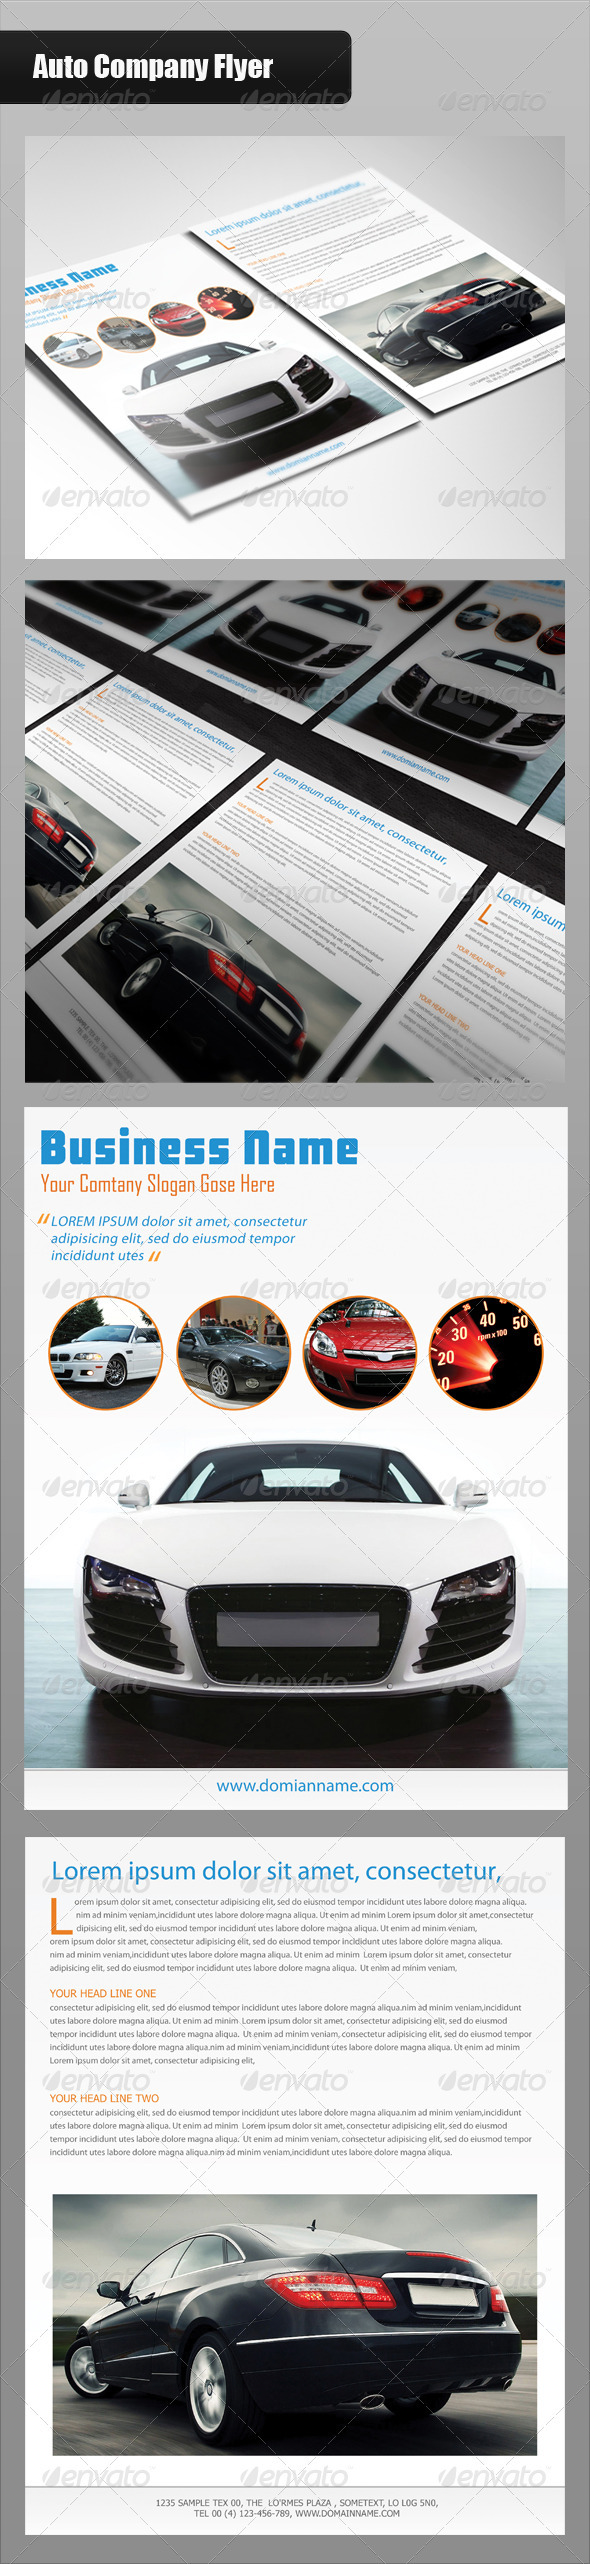 Auto Company Flyer - Commerce Flyers